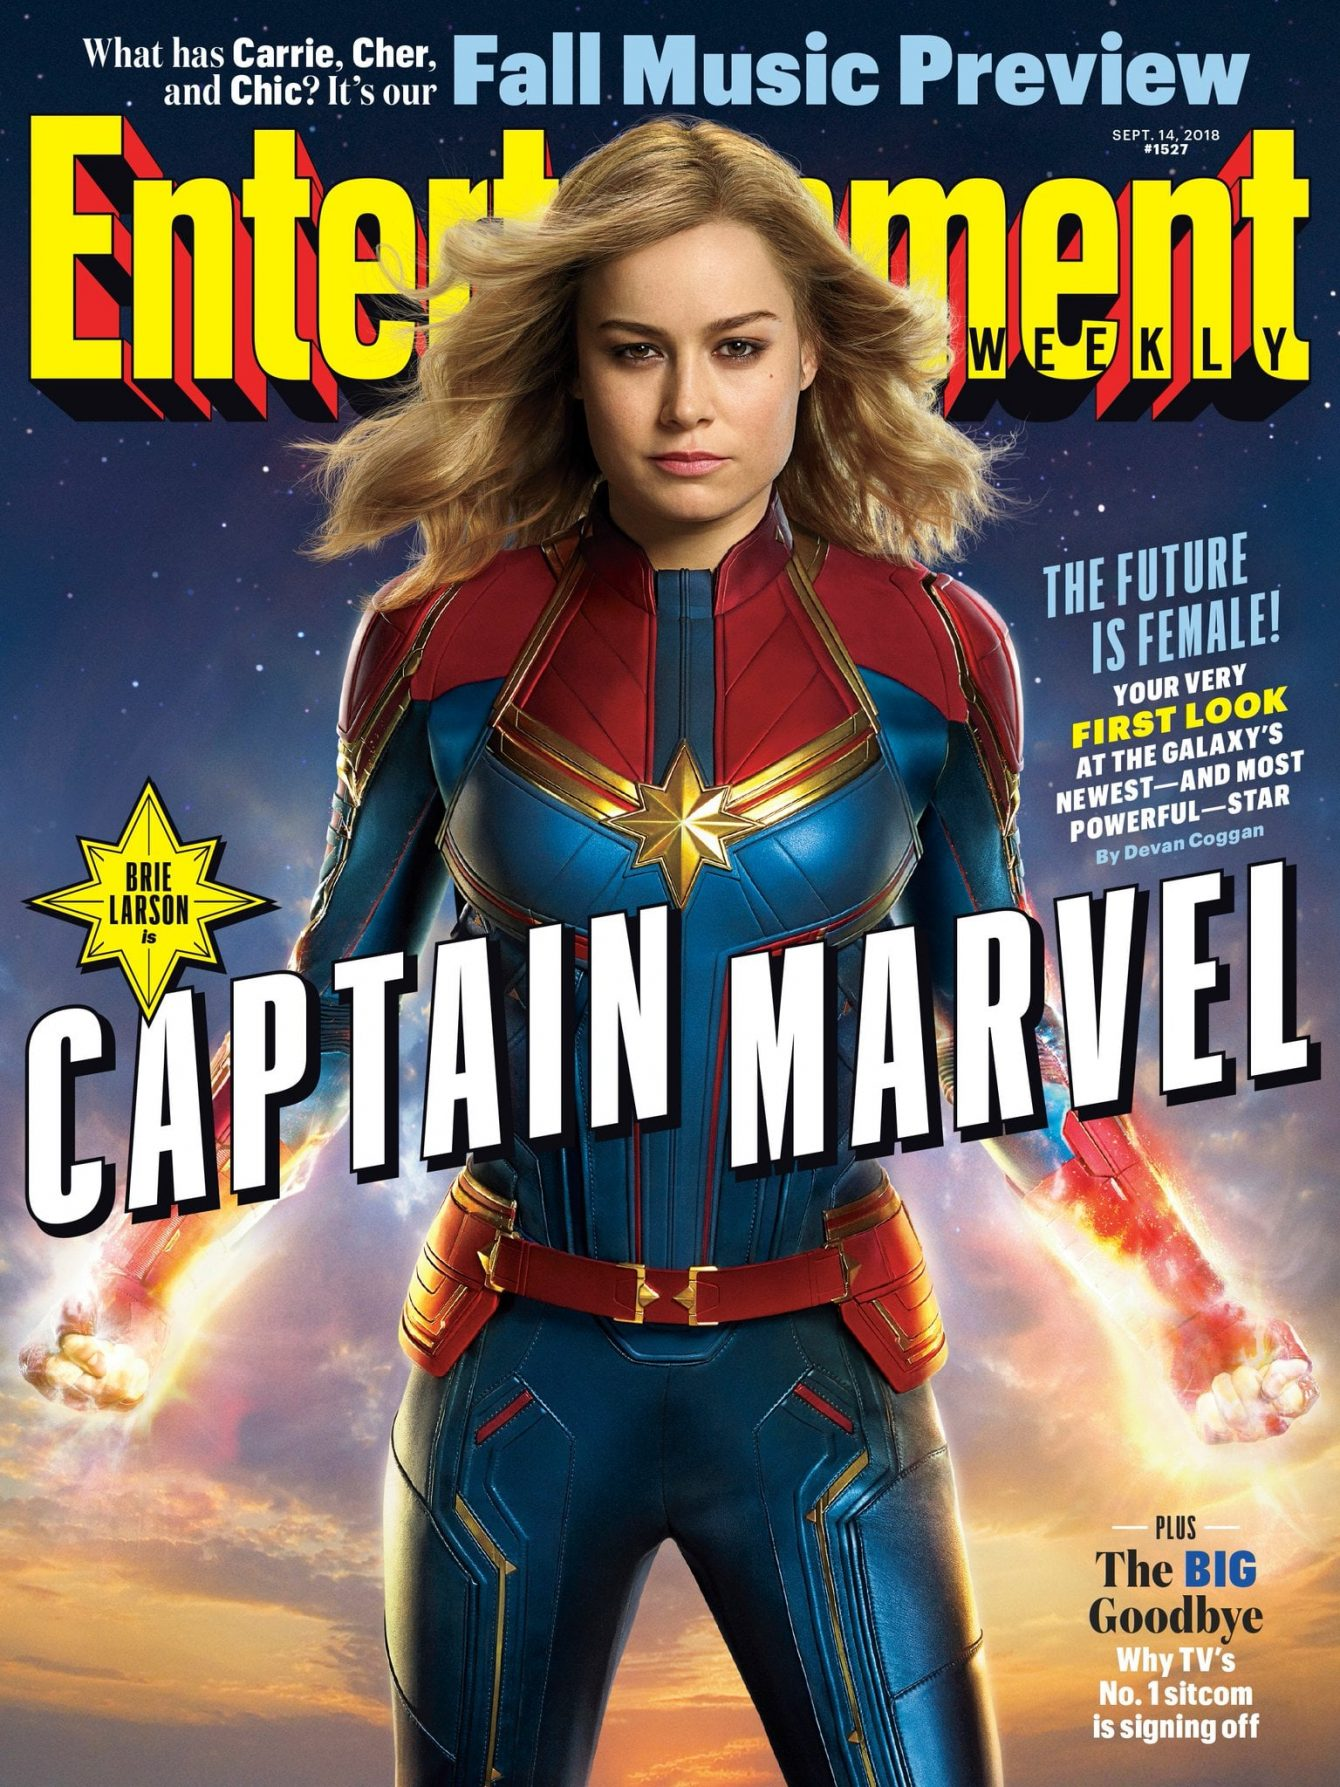 marvel adopts divisive feminist slogan to promote captain marvel